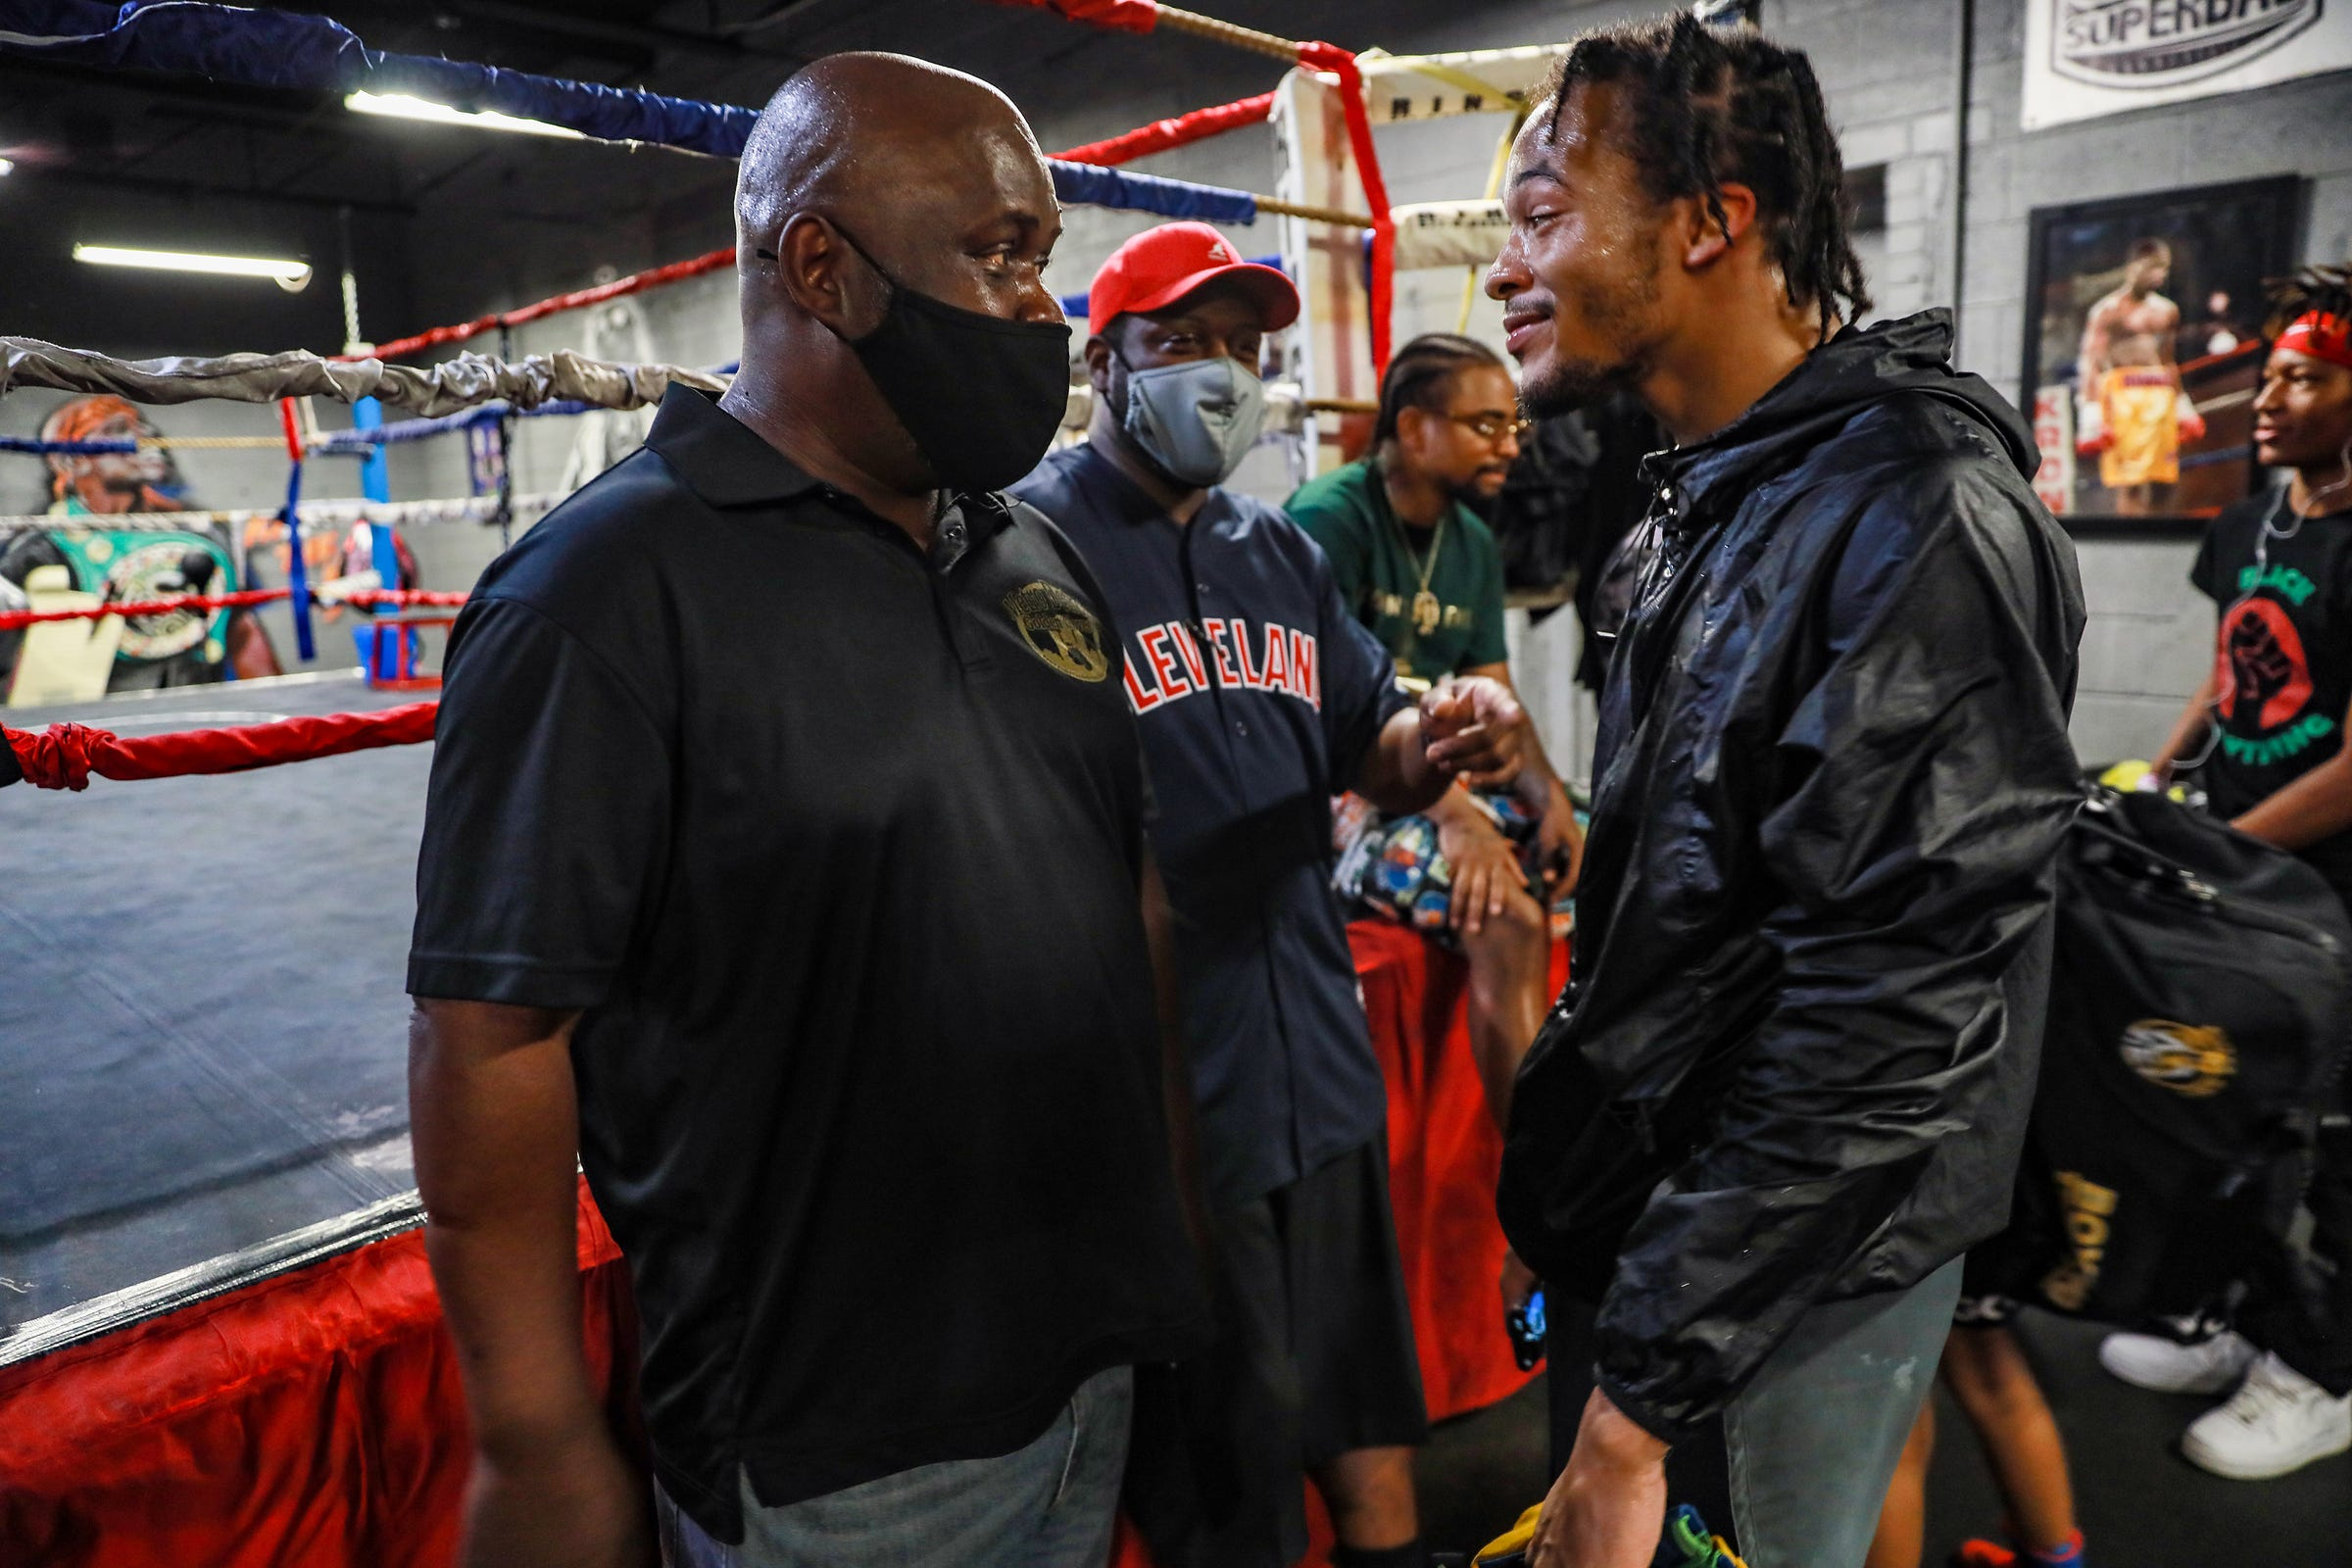 Ansel Stewart, left, chops it up with professional boxer Gordie Russ II on Saturday, June 5, 2021, before sparring begins in preparation for the Metro Detroit Golden Gloves tournament begins at the SuperBad Boxing Gym in Detroit.